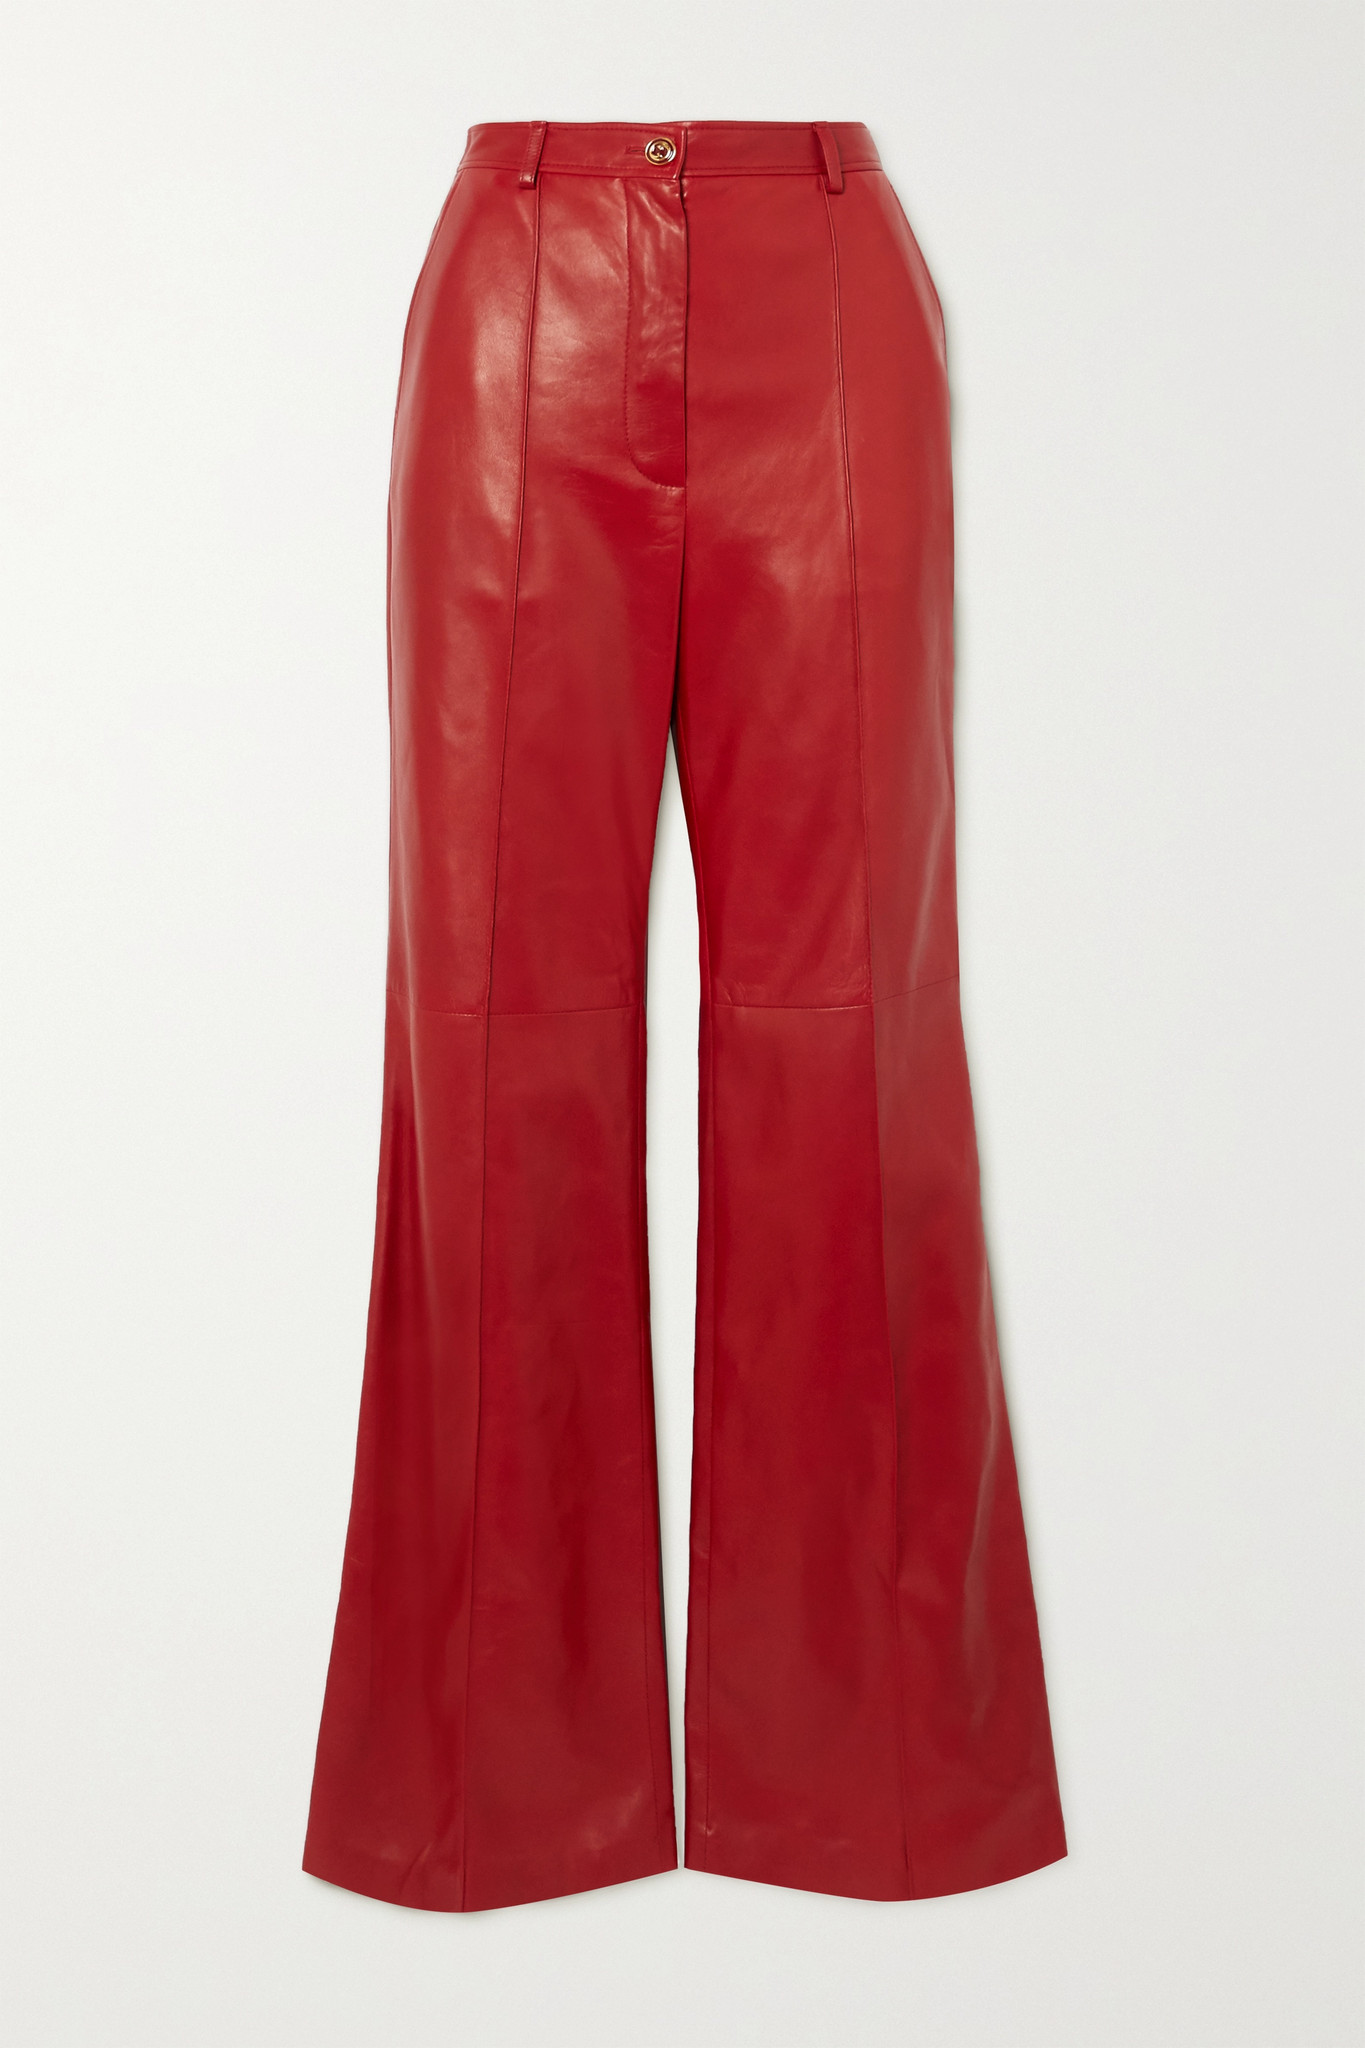 GUCCI - Leather Straight-leg Pants - Red - IT40